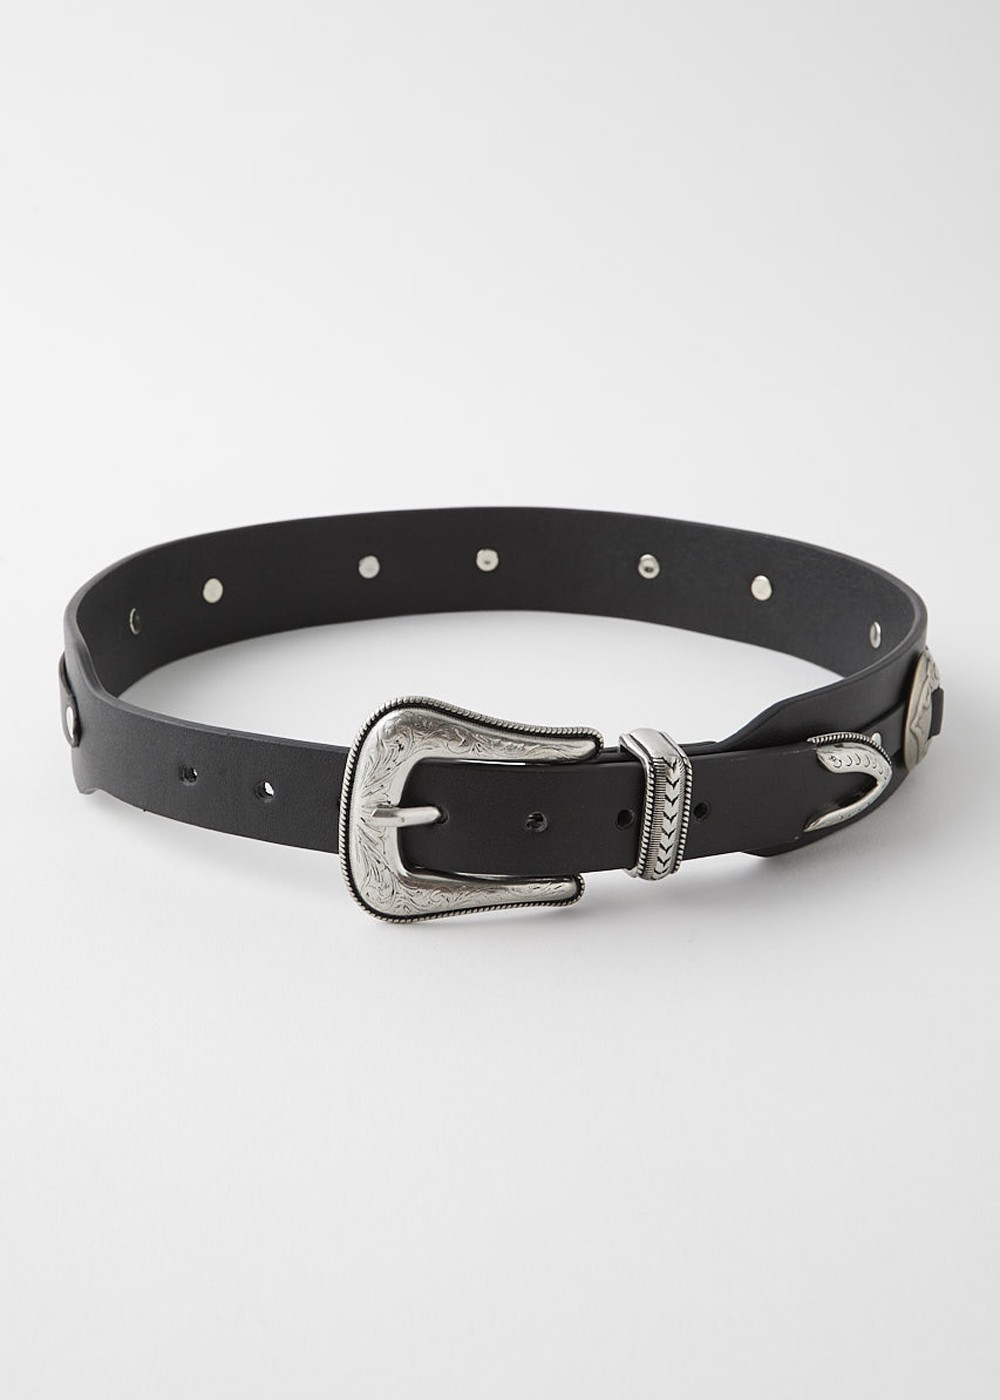 【最大70%OFF】CONCHO BELT|BLK|ベルト|MOUSSY